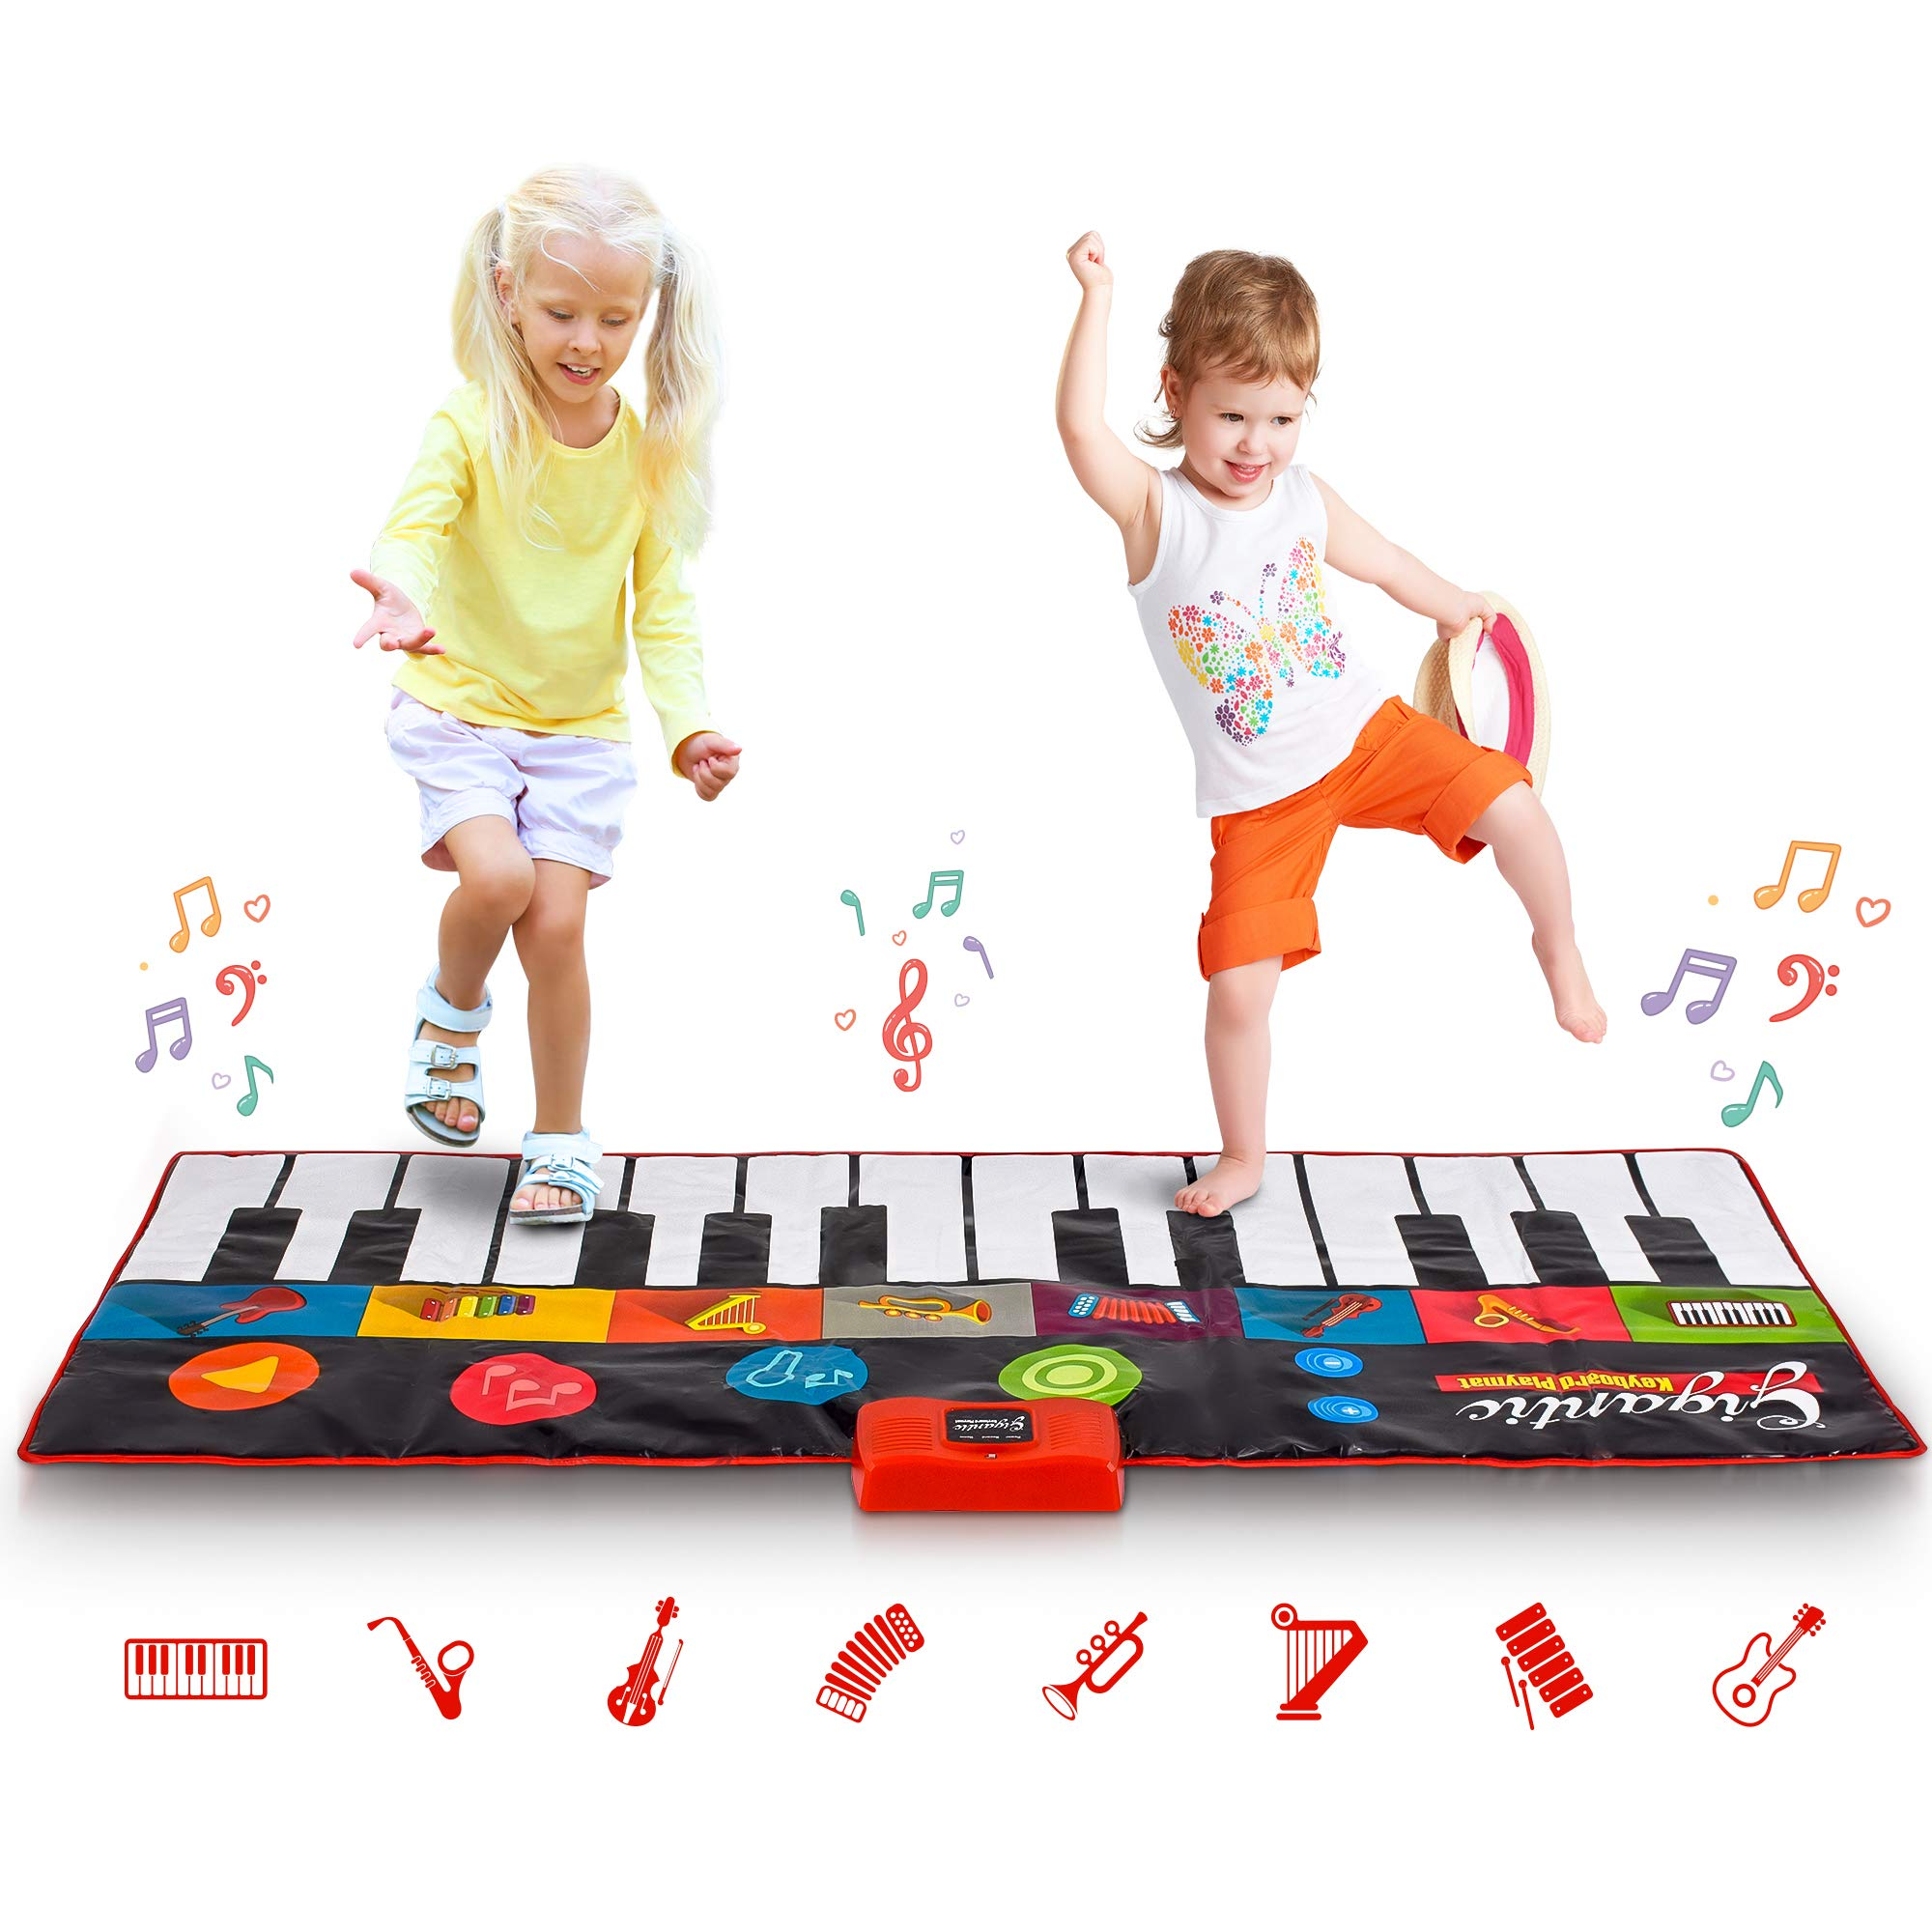 Abco Tech Giant Piano Mat - Jumbo Floor Keyboard with Play, Record, Playback and Demo Modes - New Look - 8 Different Musical Instruments Sound Options - 70in Play Mat - 24 Keys by Abco Tech